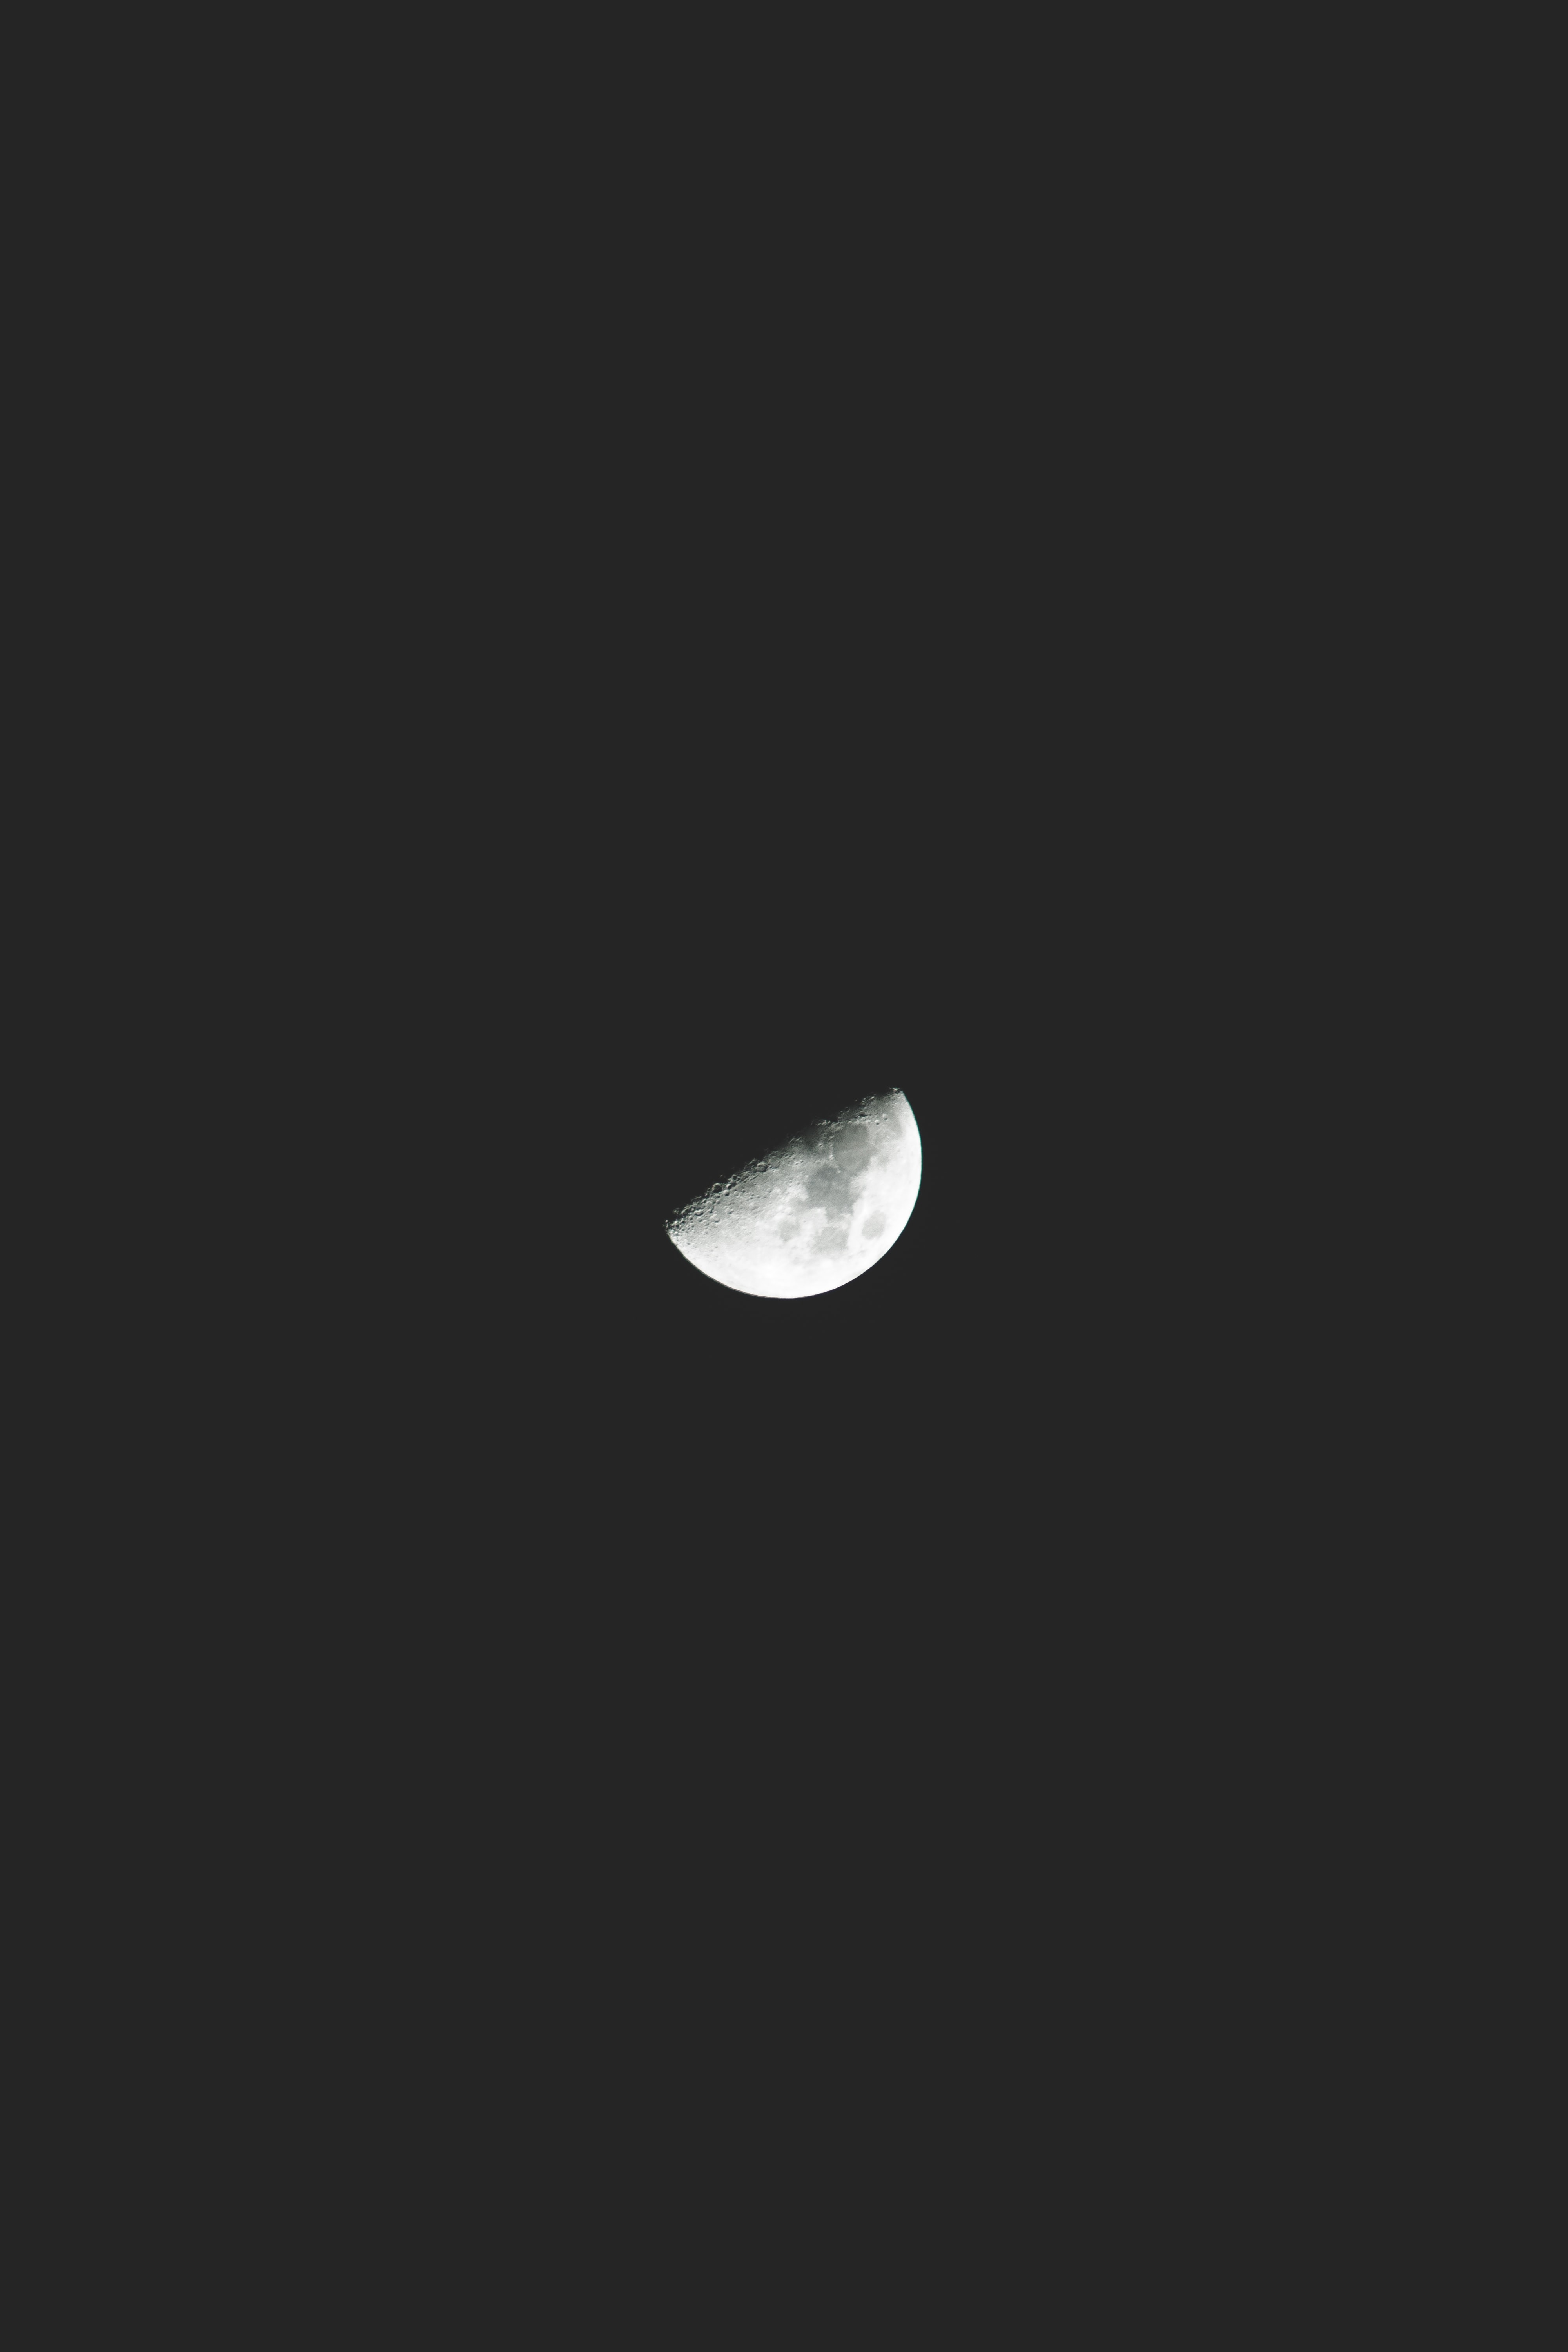 A half moon on the night sky